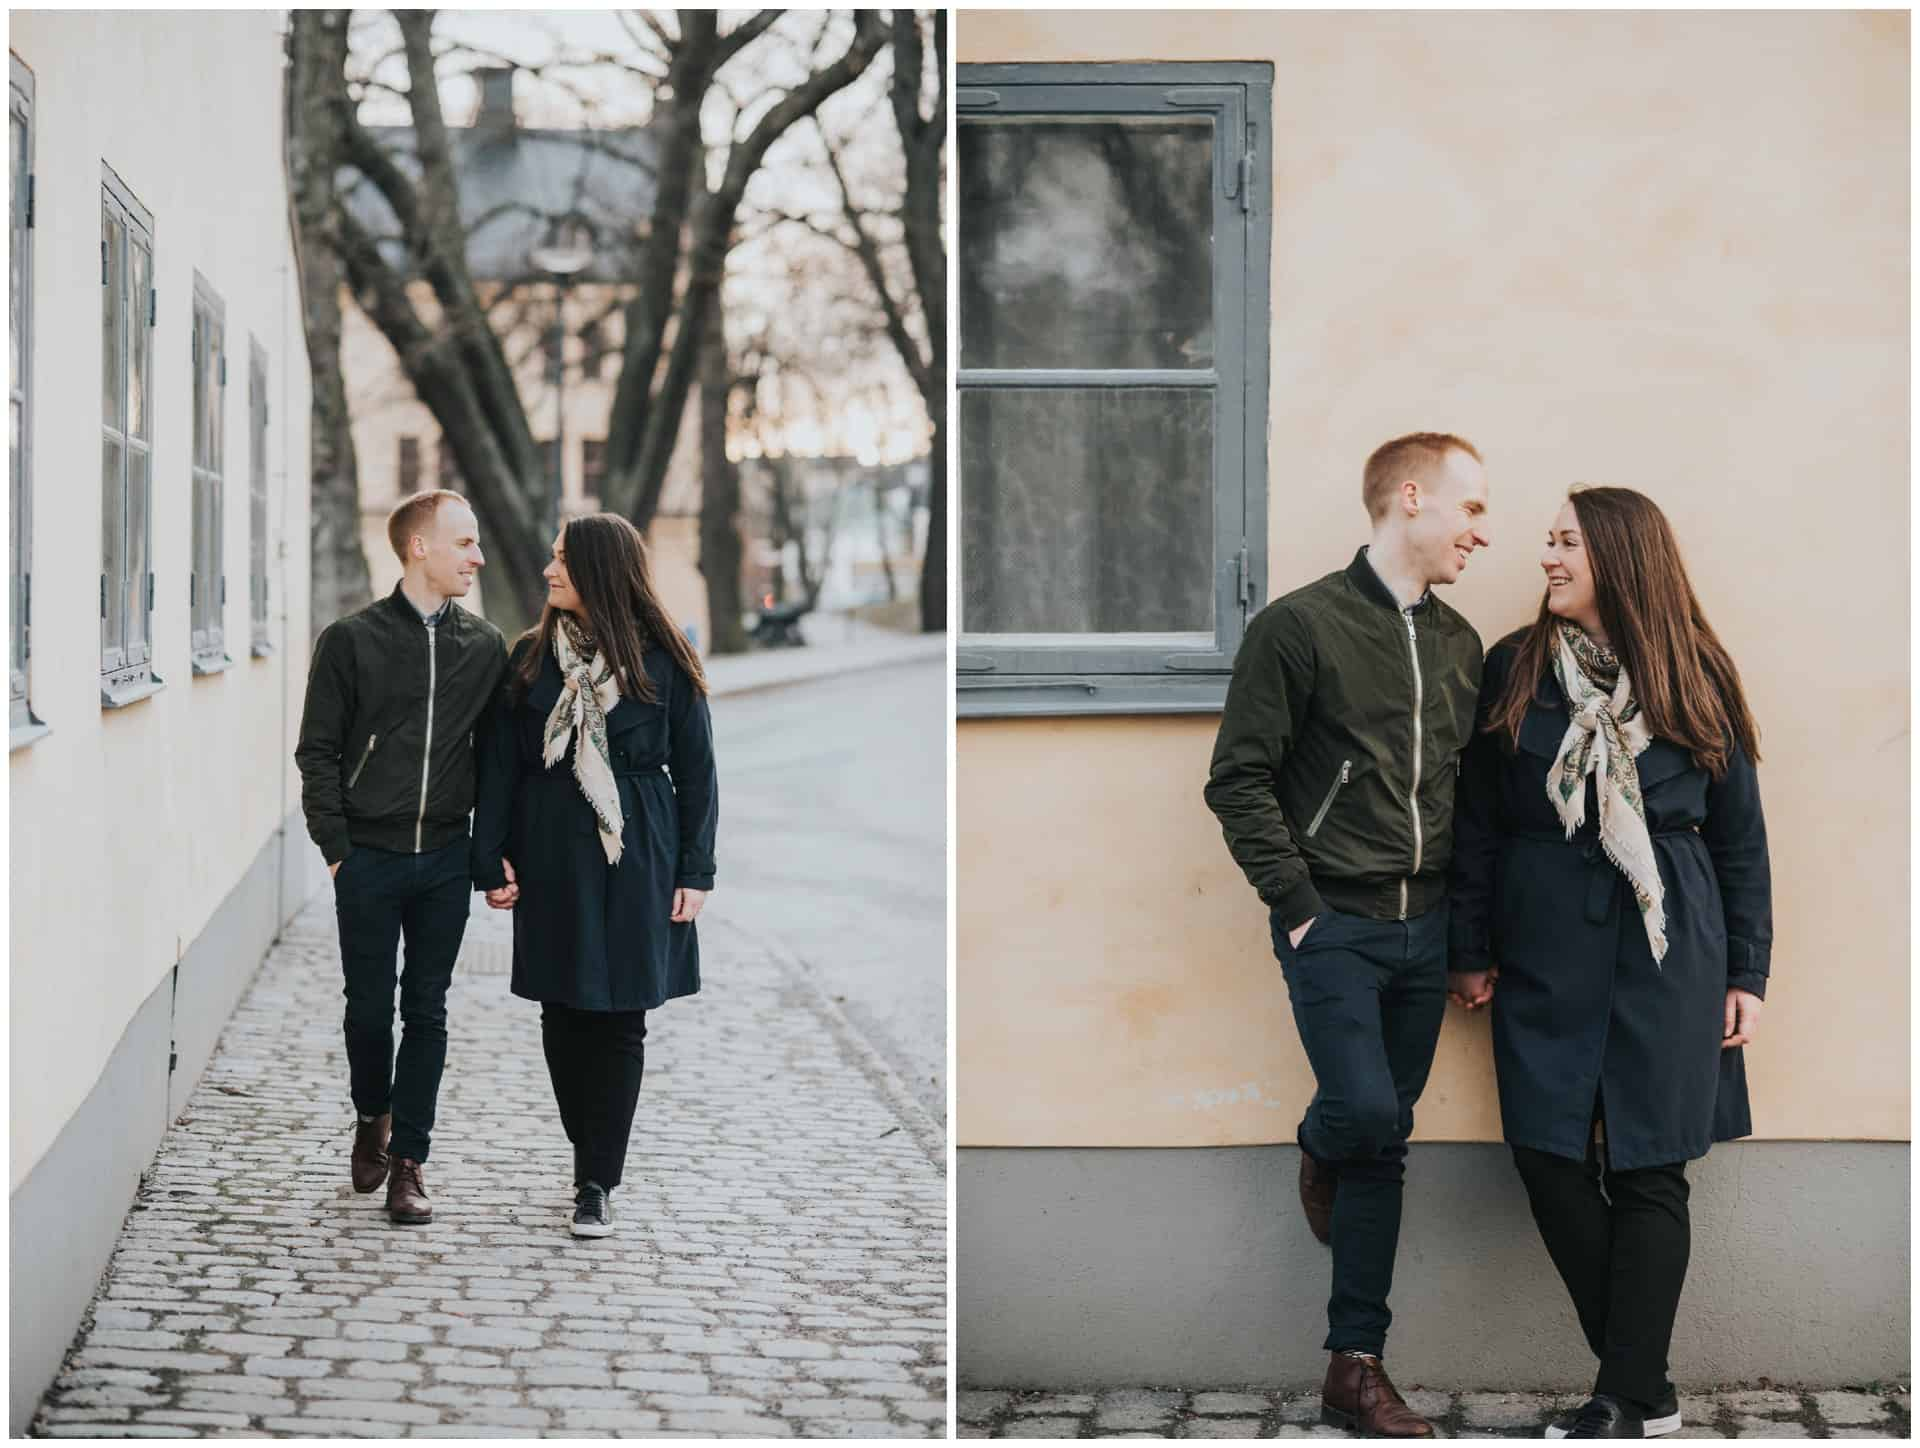 Couples session on a chilly day in Stockholm, parfotografering på Skeppsholmen, Stockholm, Hotel Skeppsholmen